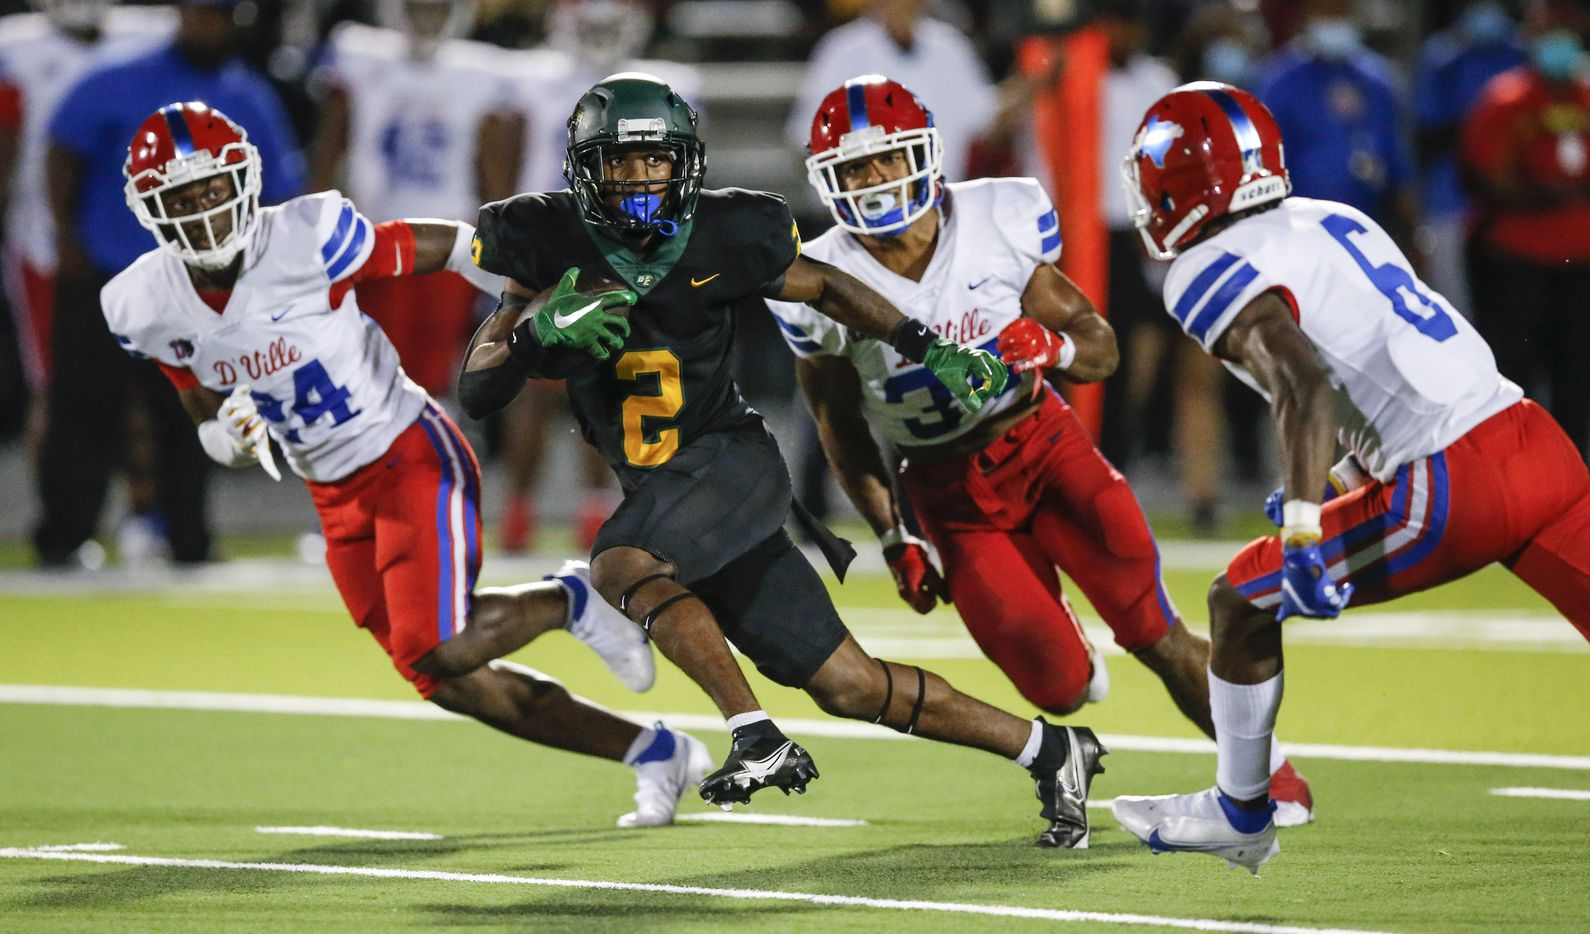 DeSoto senior wide receiver Mike Murphy (2) carries the ball against the Duncanville defense during the first half of a high school football game at DeSoto High School, Friday, September 17, 2021. (Brandon Wade/Special Contributor)